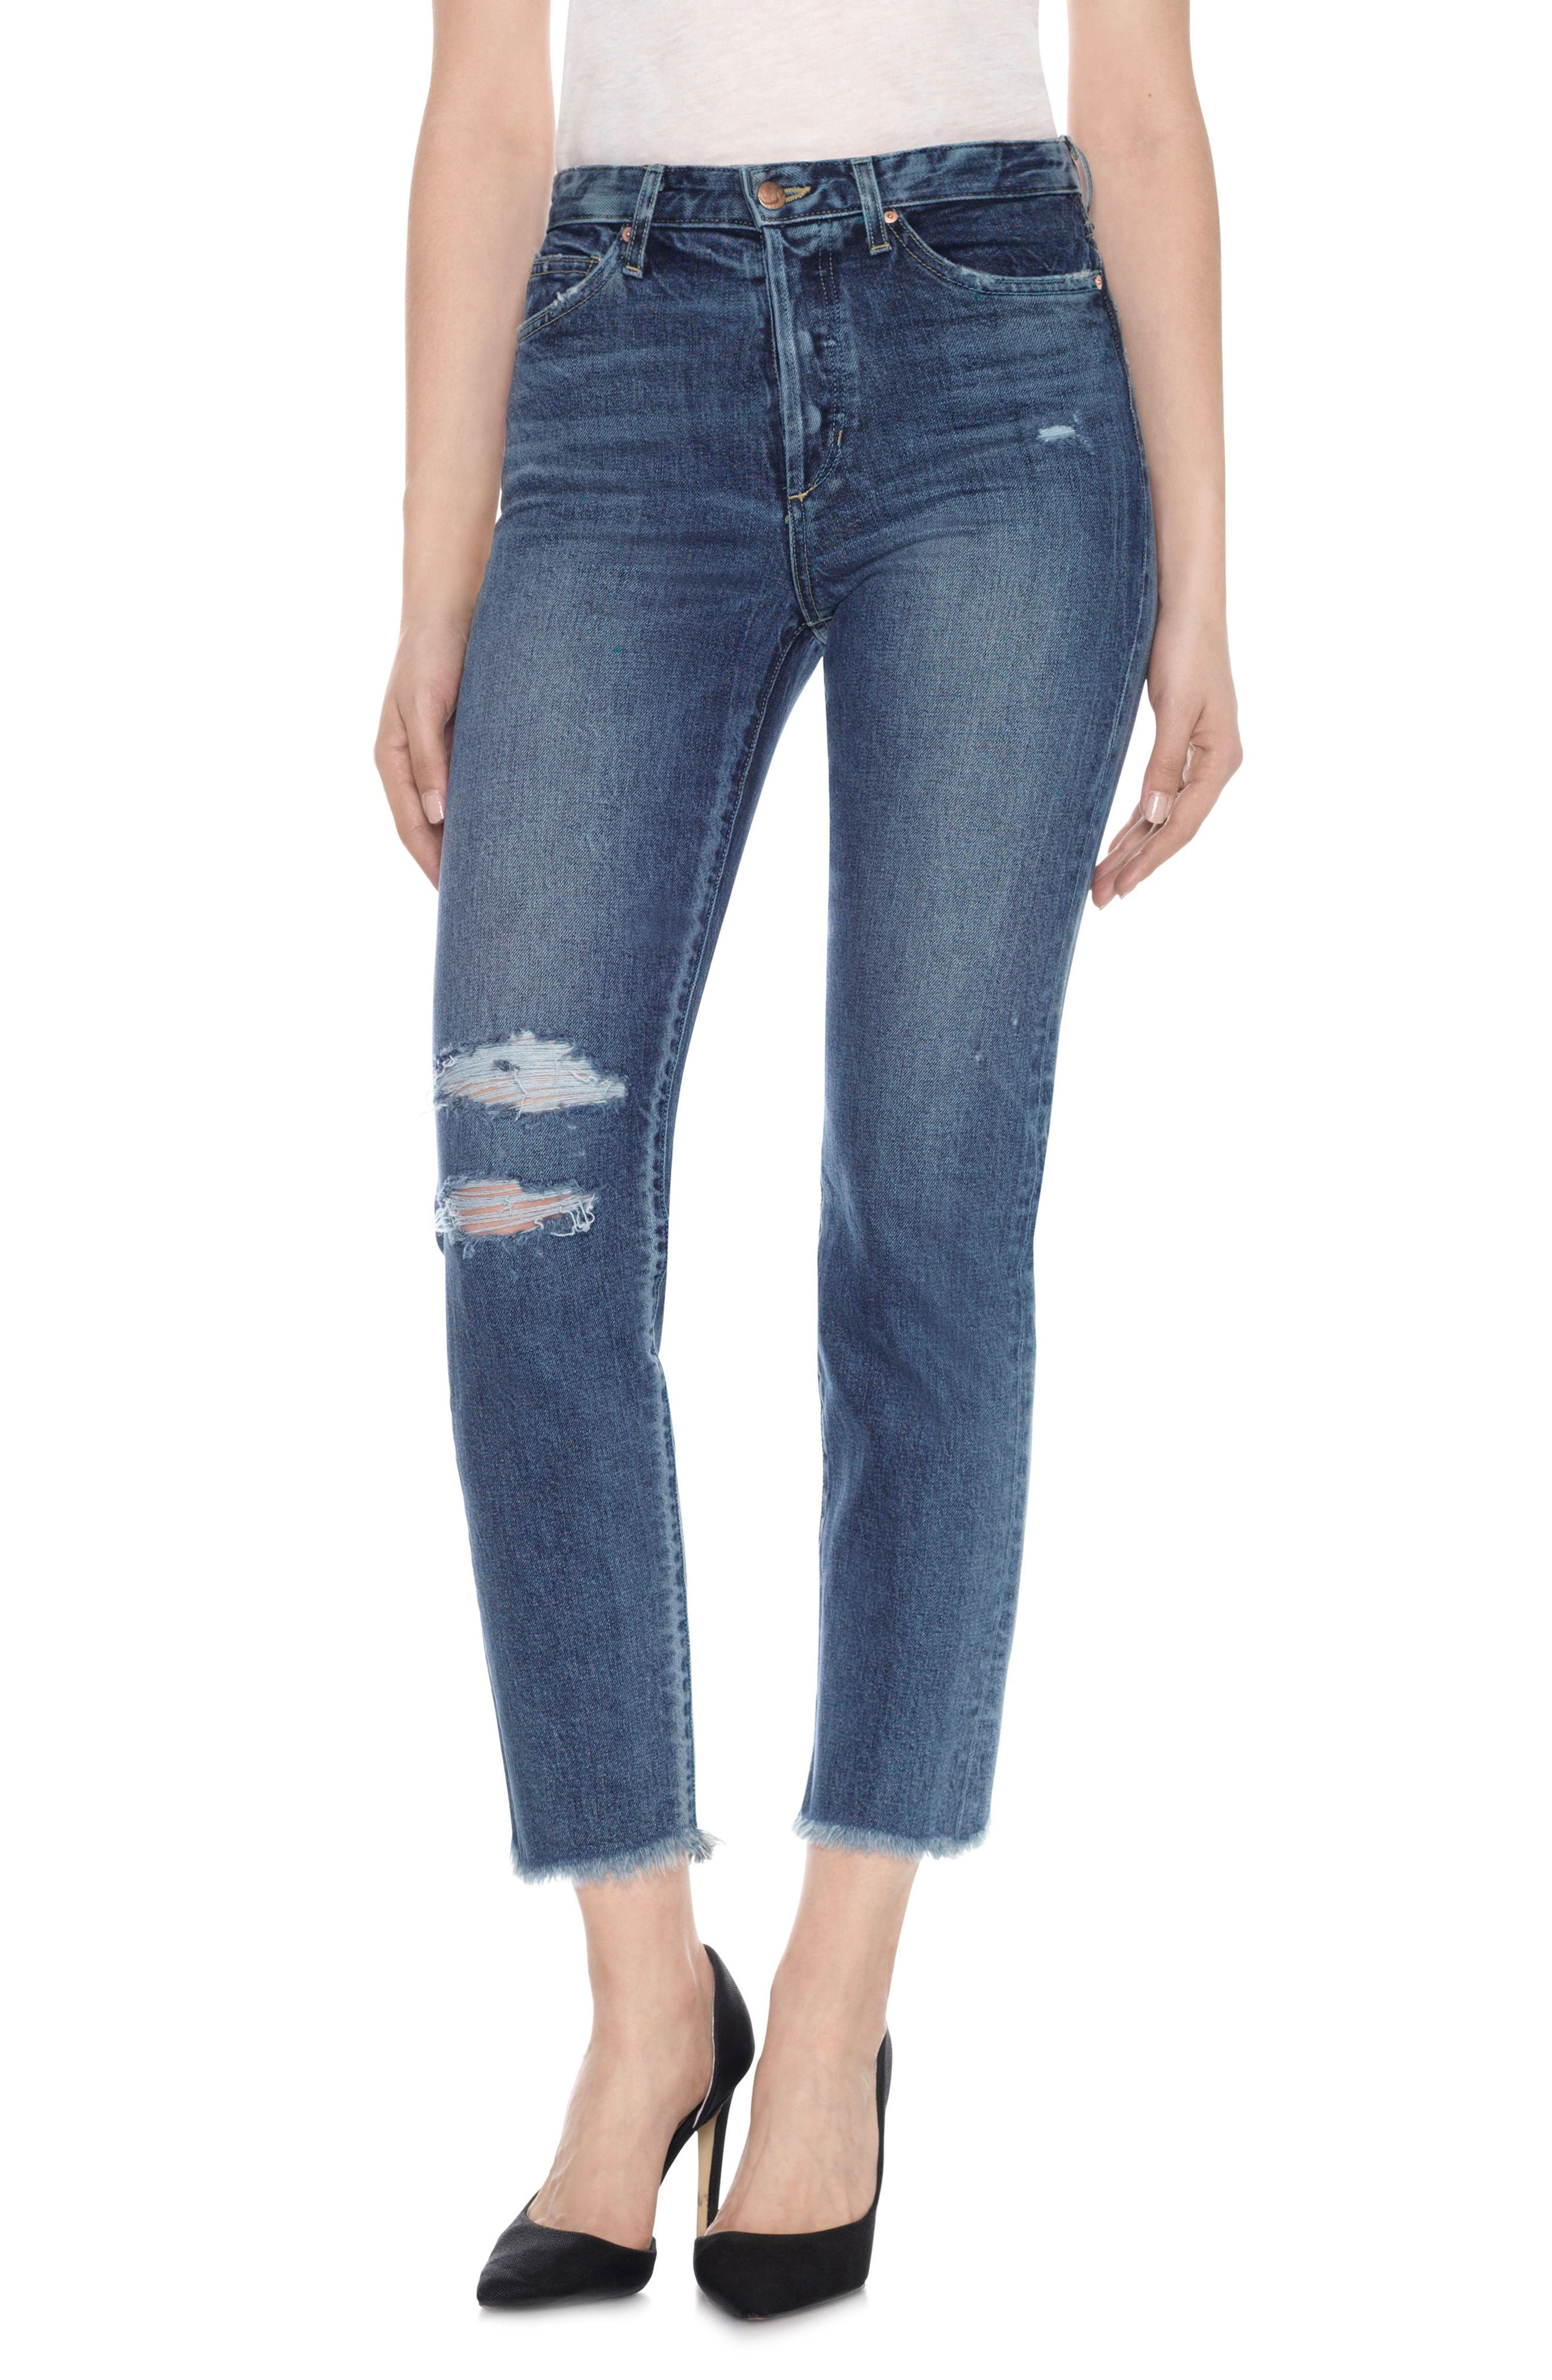 Main Image - Taylor Hill x Joe's Debbie High Rise Ankle Jeans (Julee)